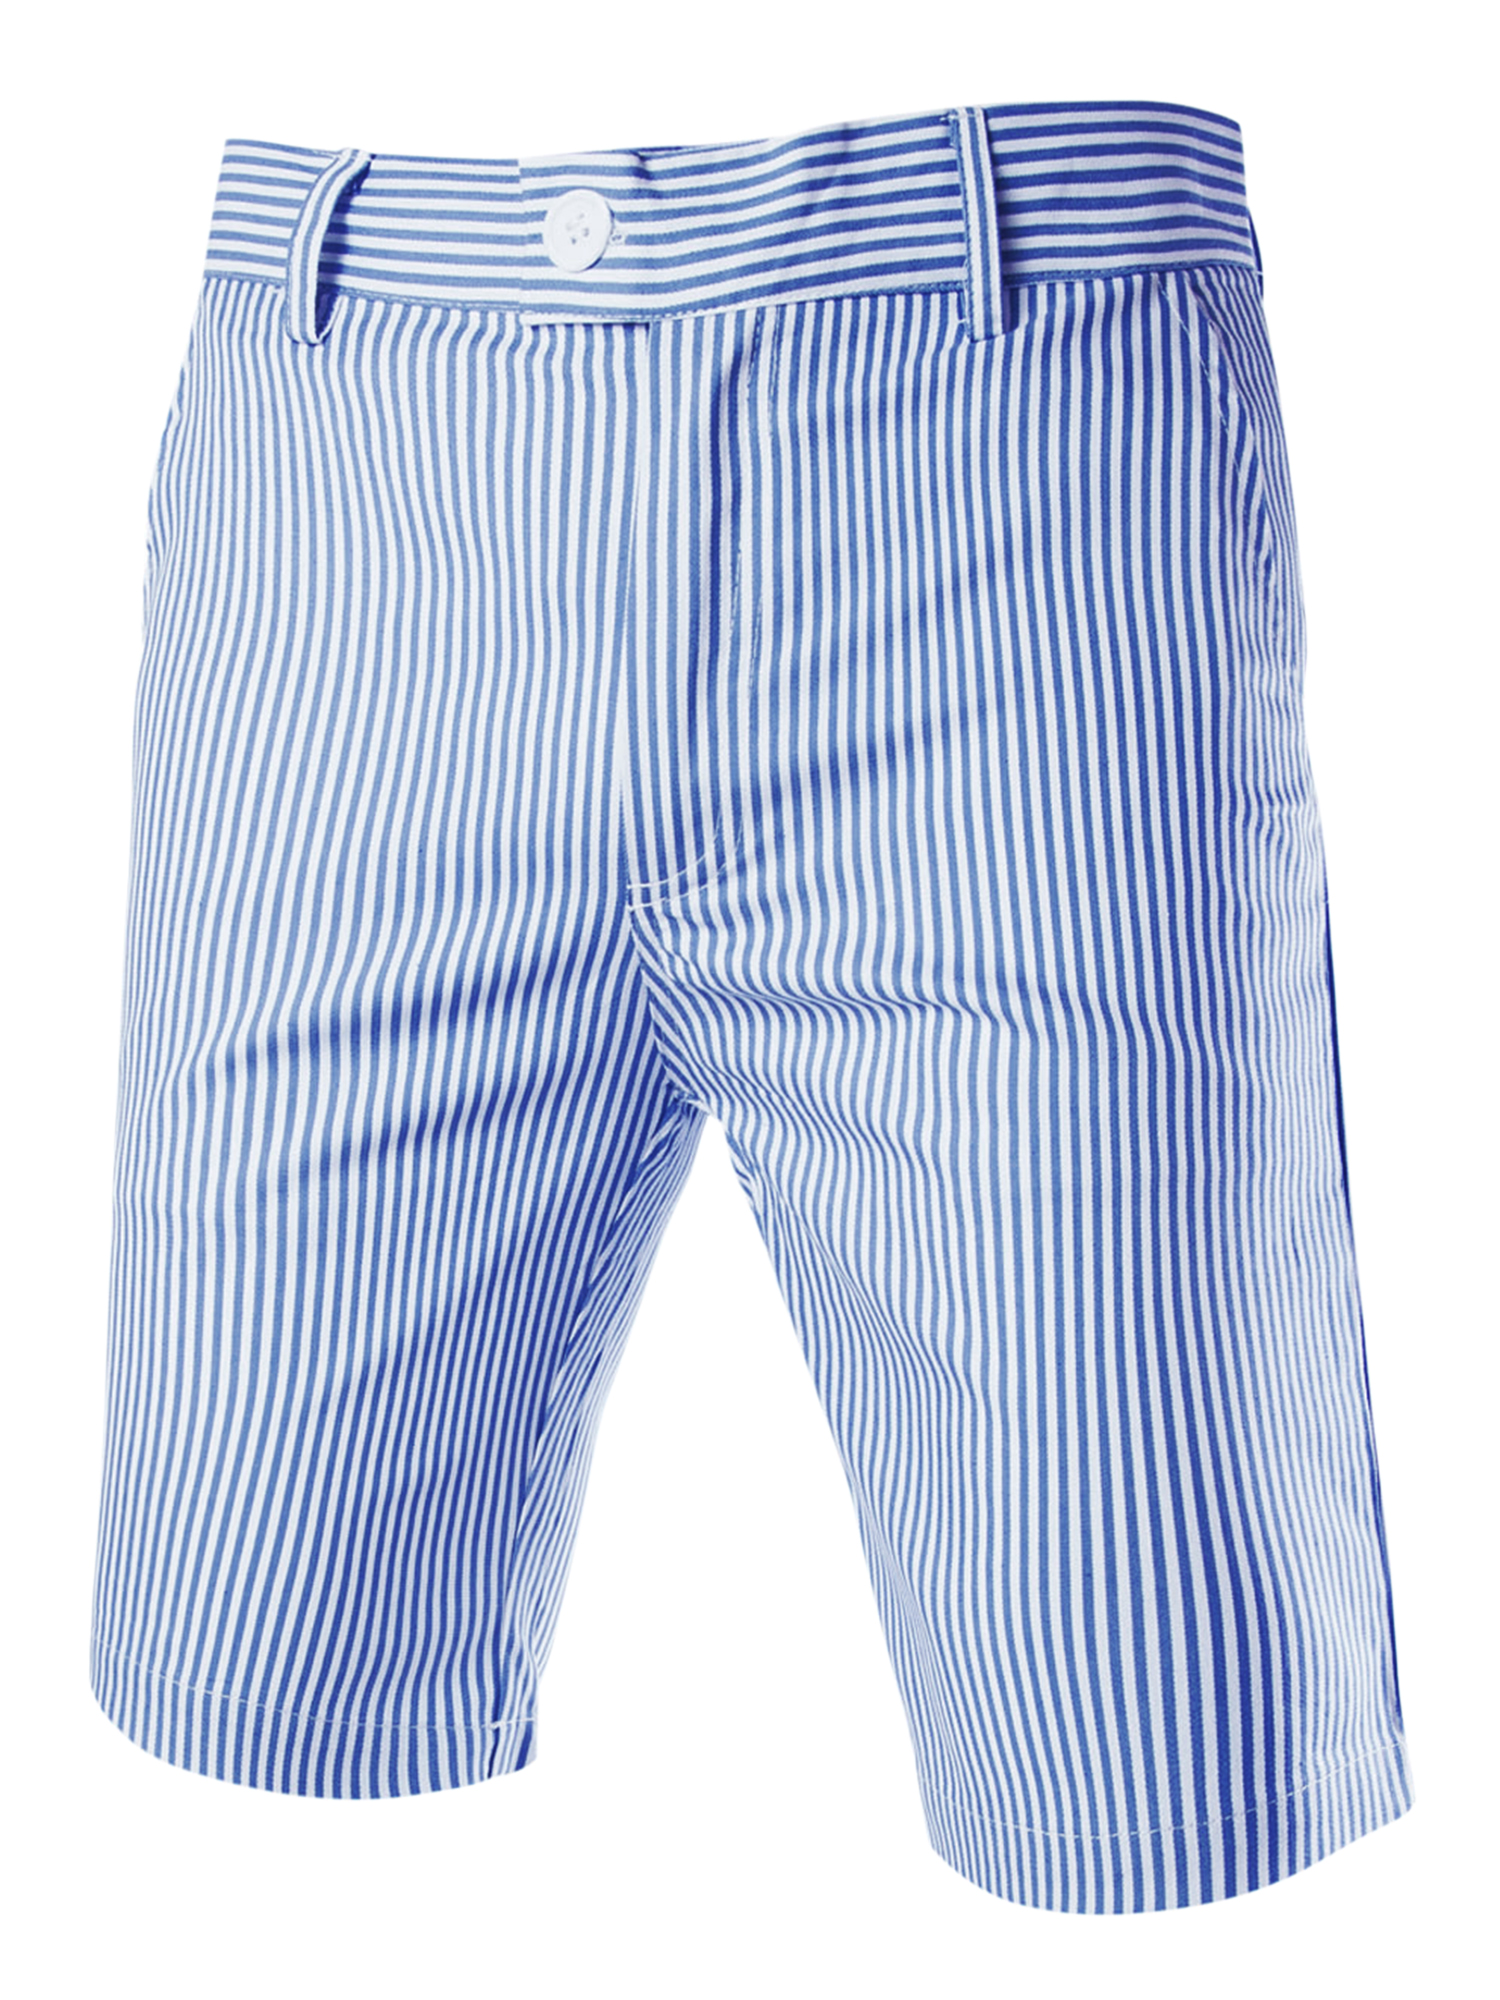 Men Vertical Stripes Four Pockets Casual Chino Shorts Blue White W28